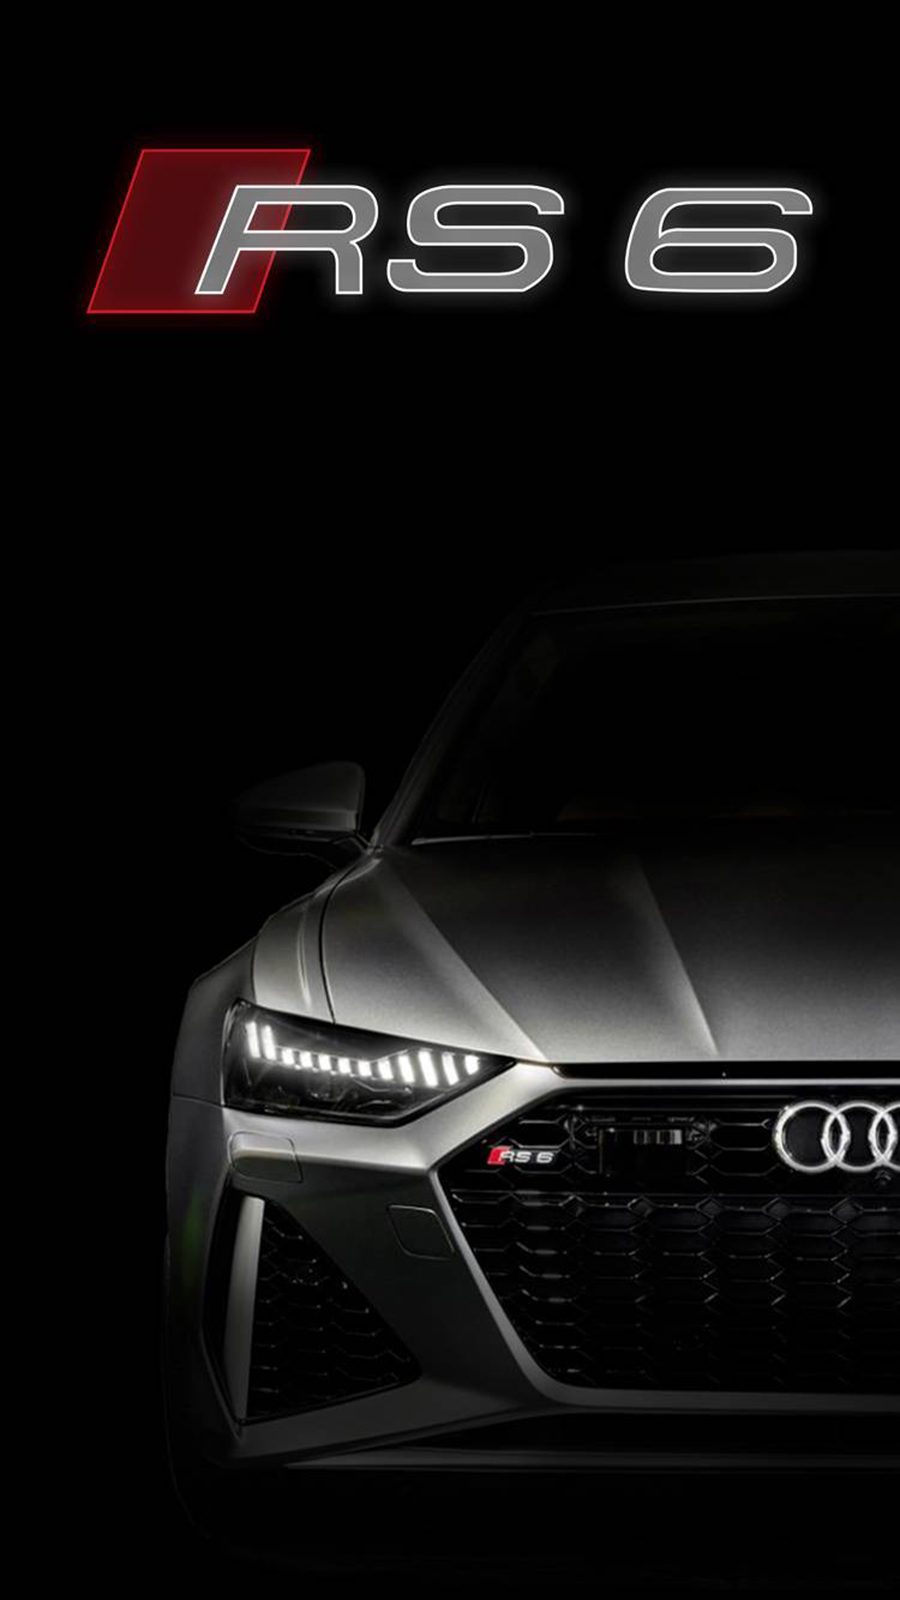 Audi RS6 2020 Wallpapers Free Download For Your Device